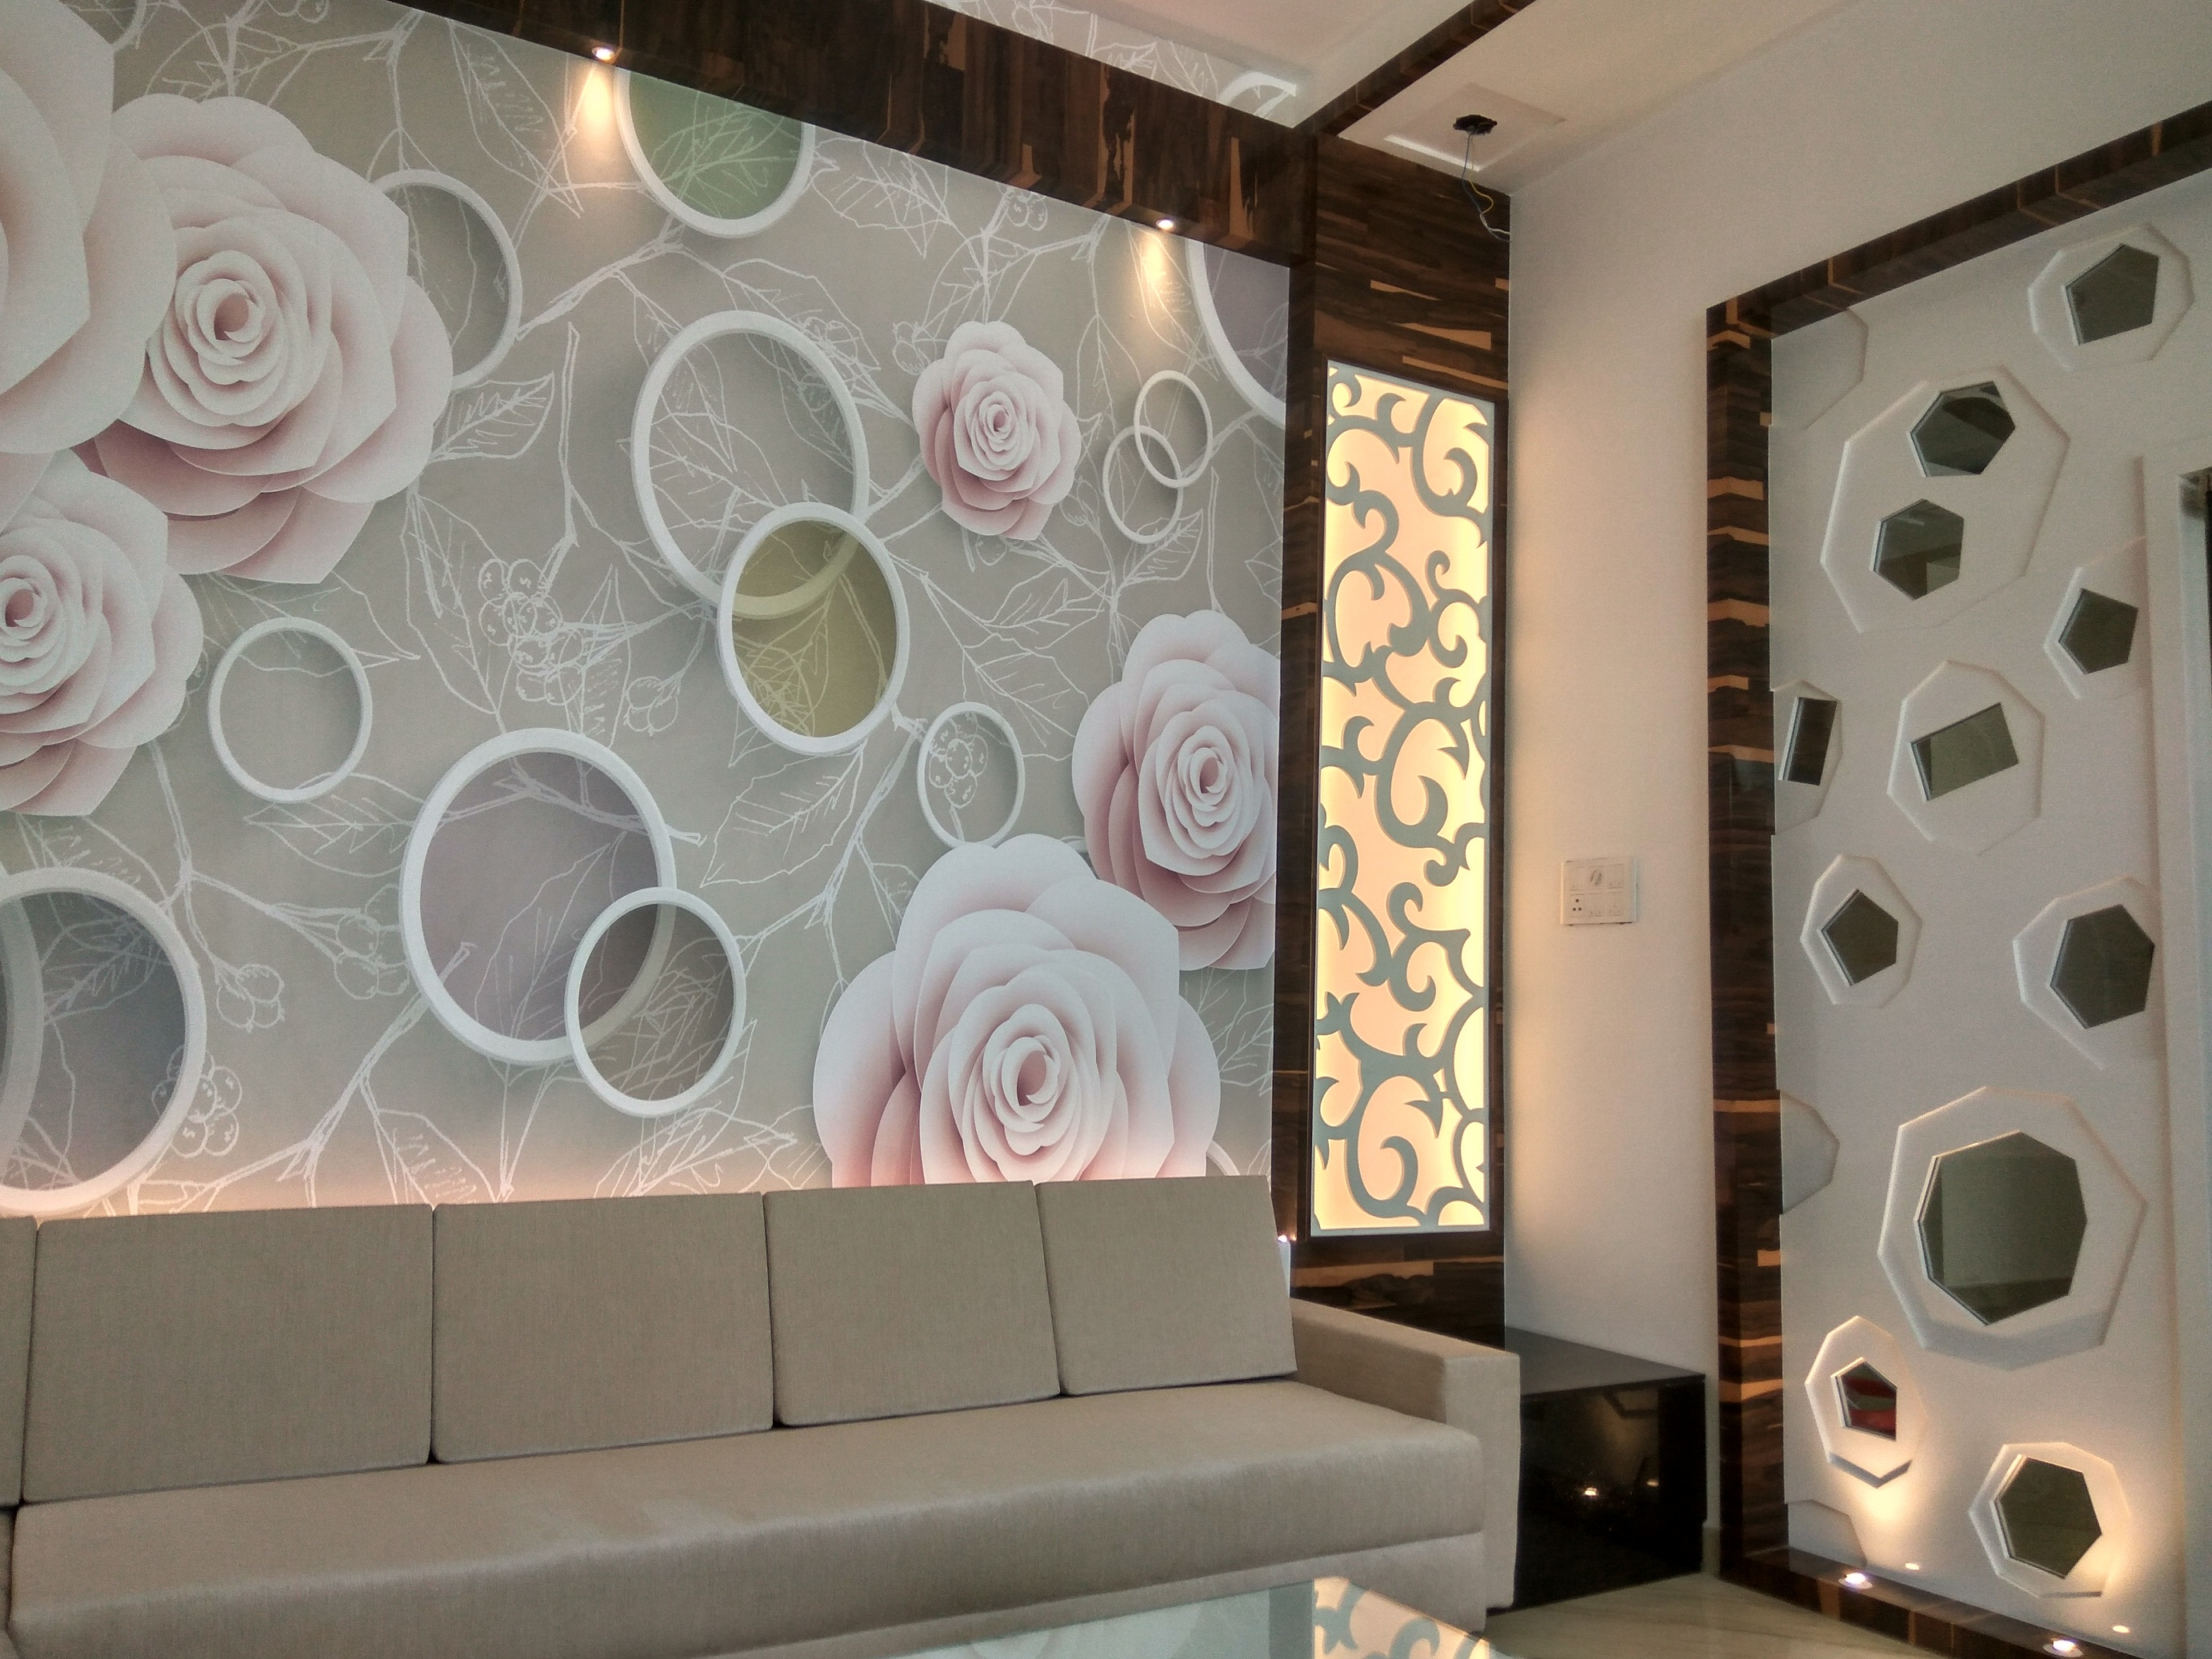 Tips for wallpapering your house